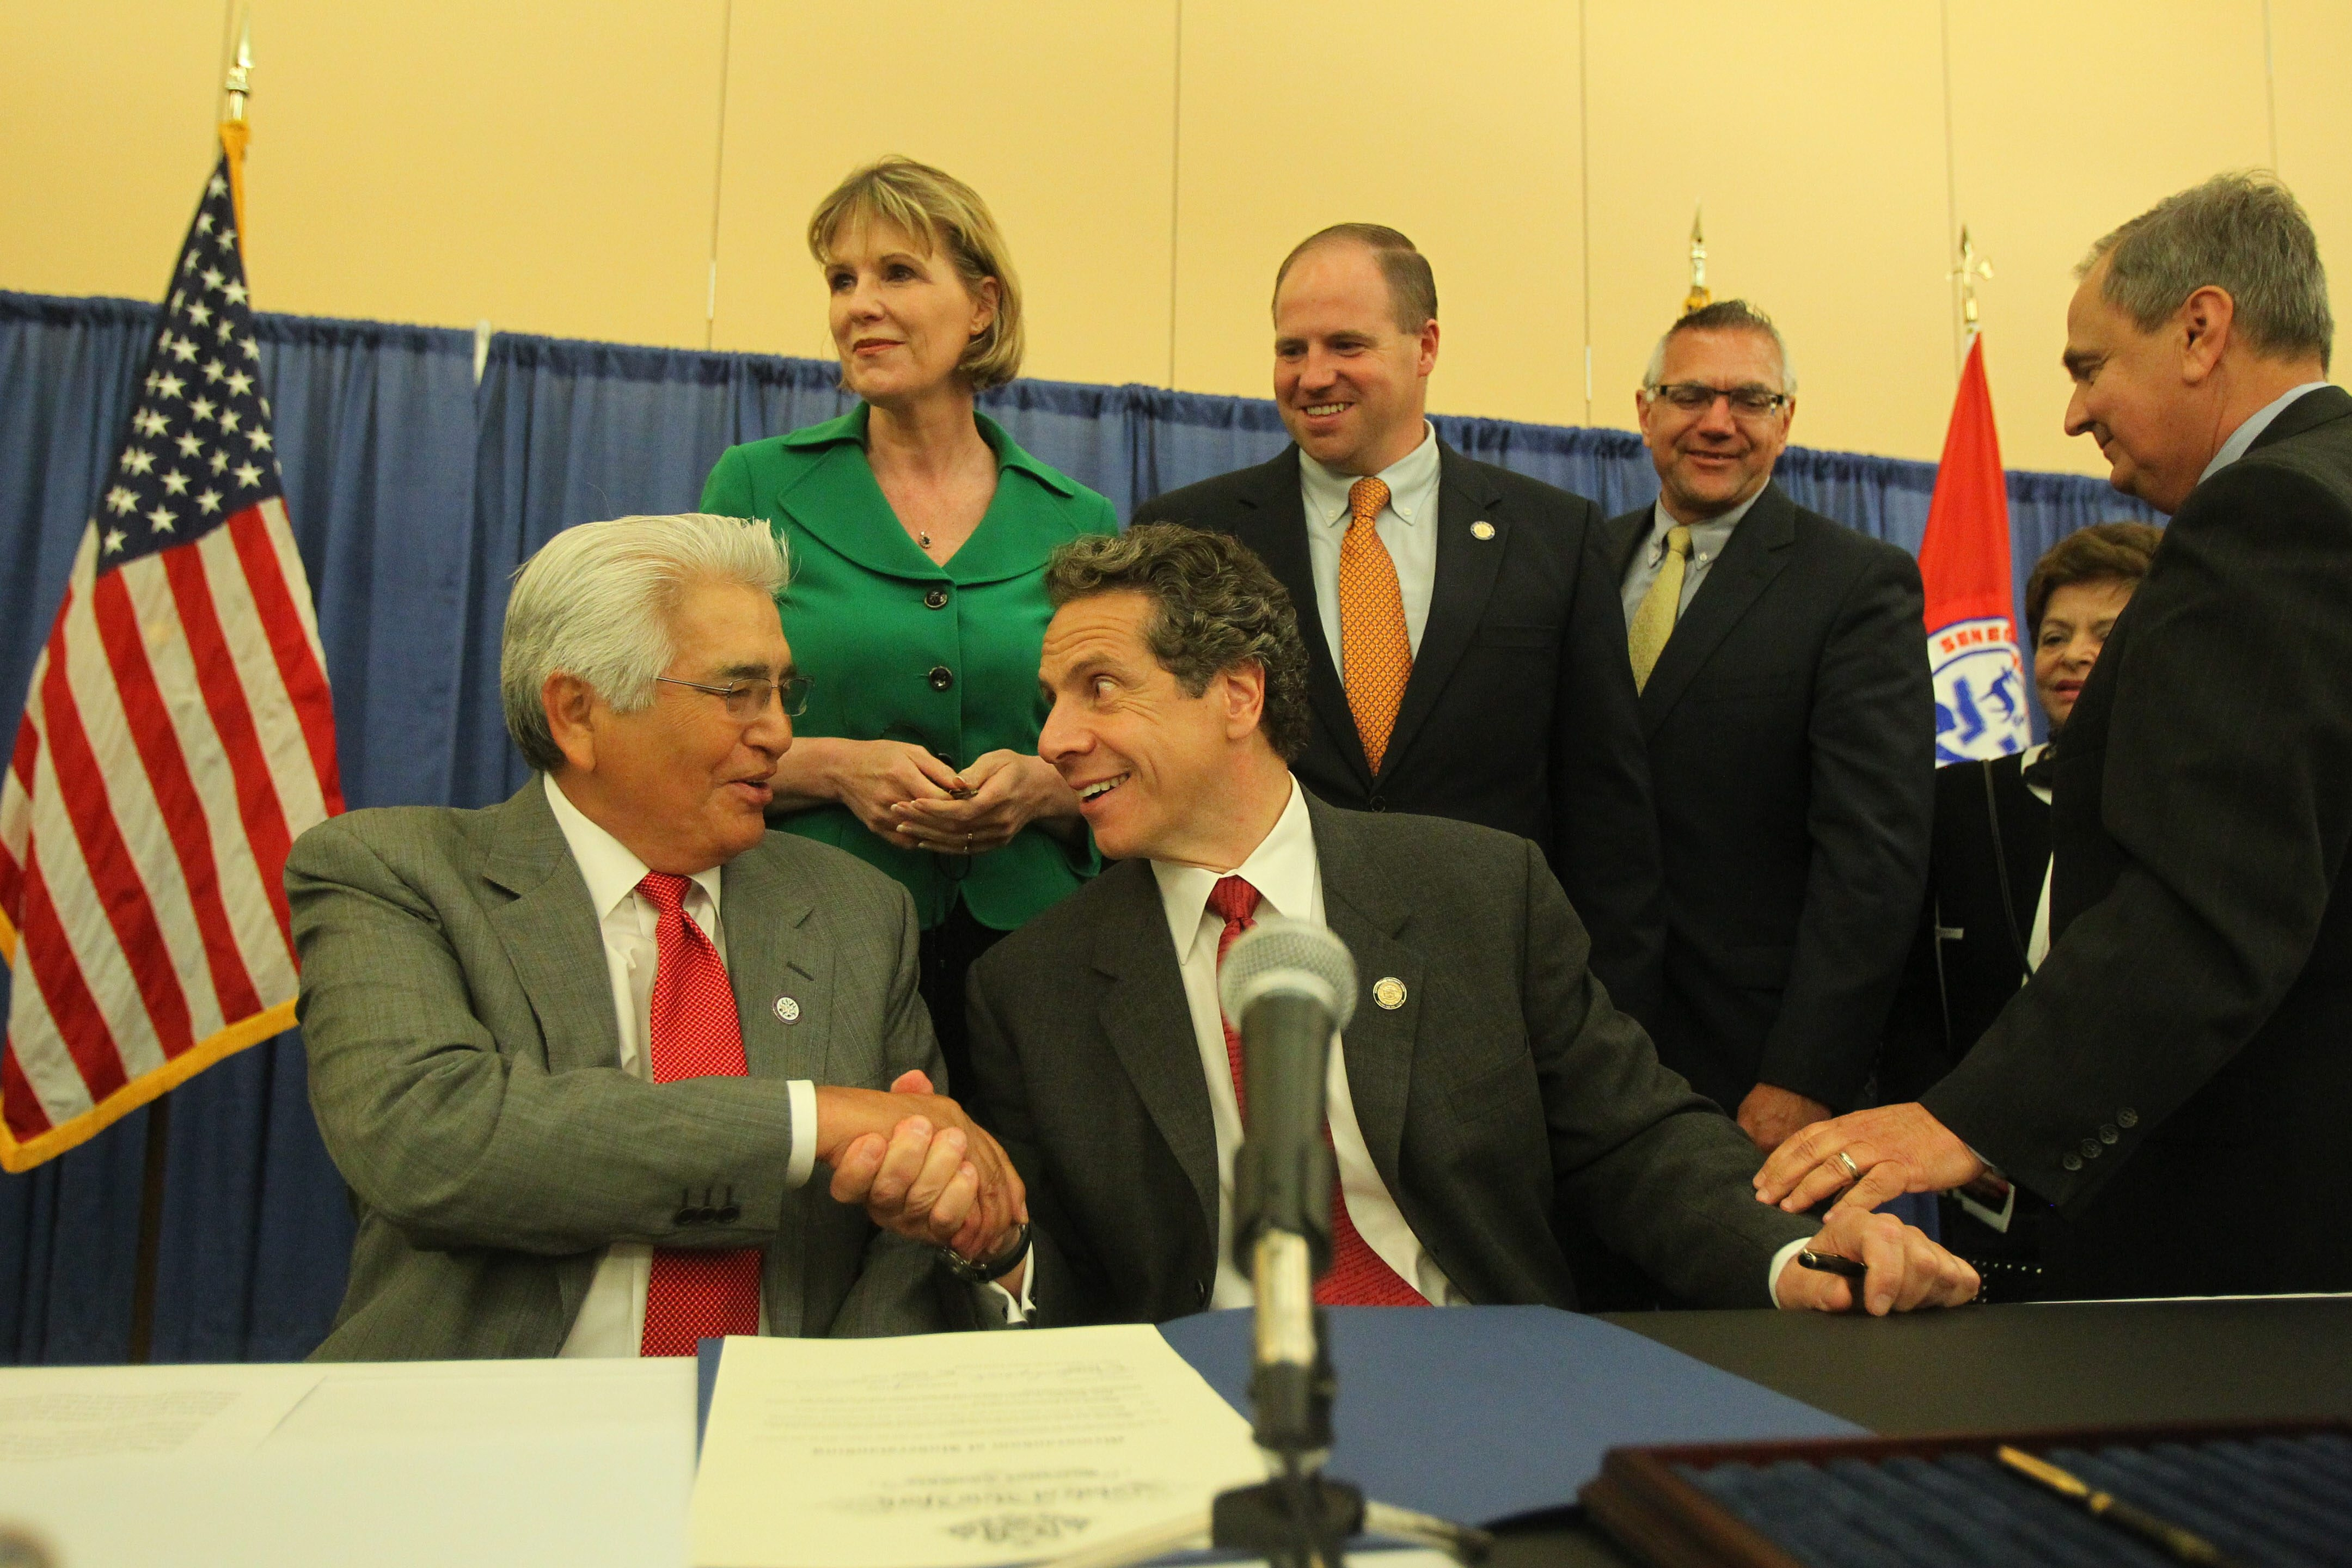 Seneca Nation President Barry Snyder Sr. and Gov. Andrew M. Cuomo sign an agreement after a long dispute about casino gambling in Niagara Falls in June. A casino in the Rochester area was not part of that agreement.